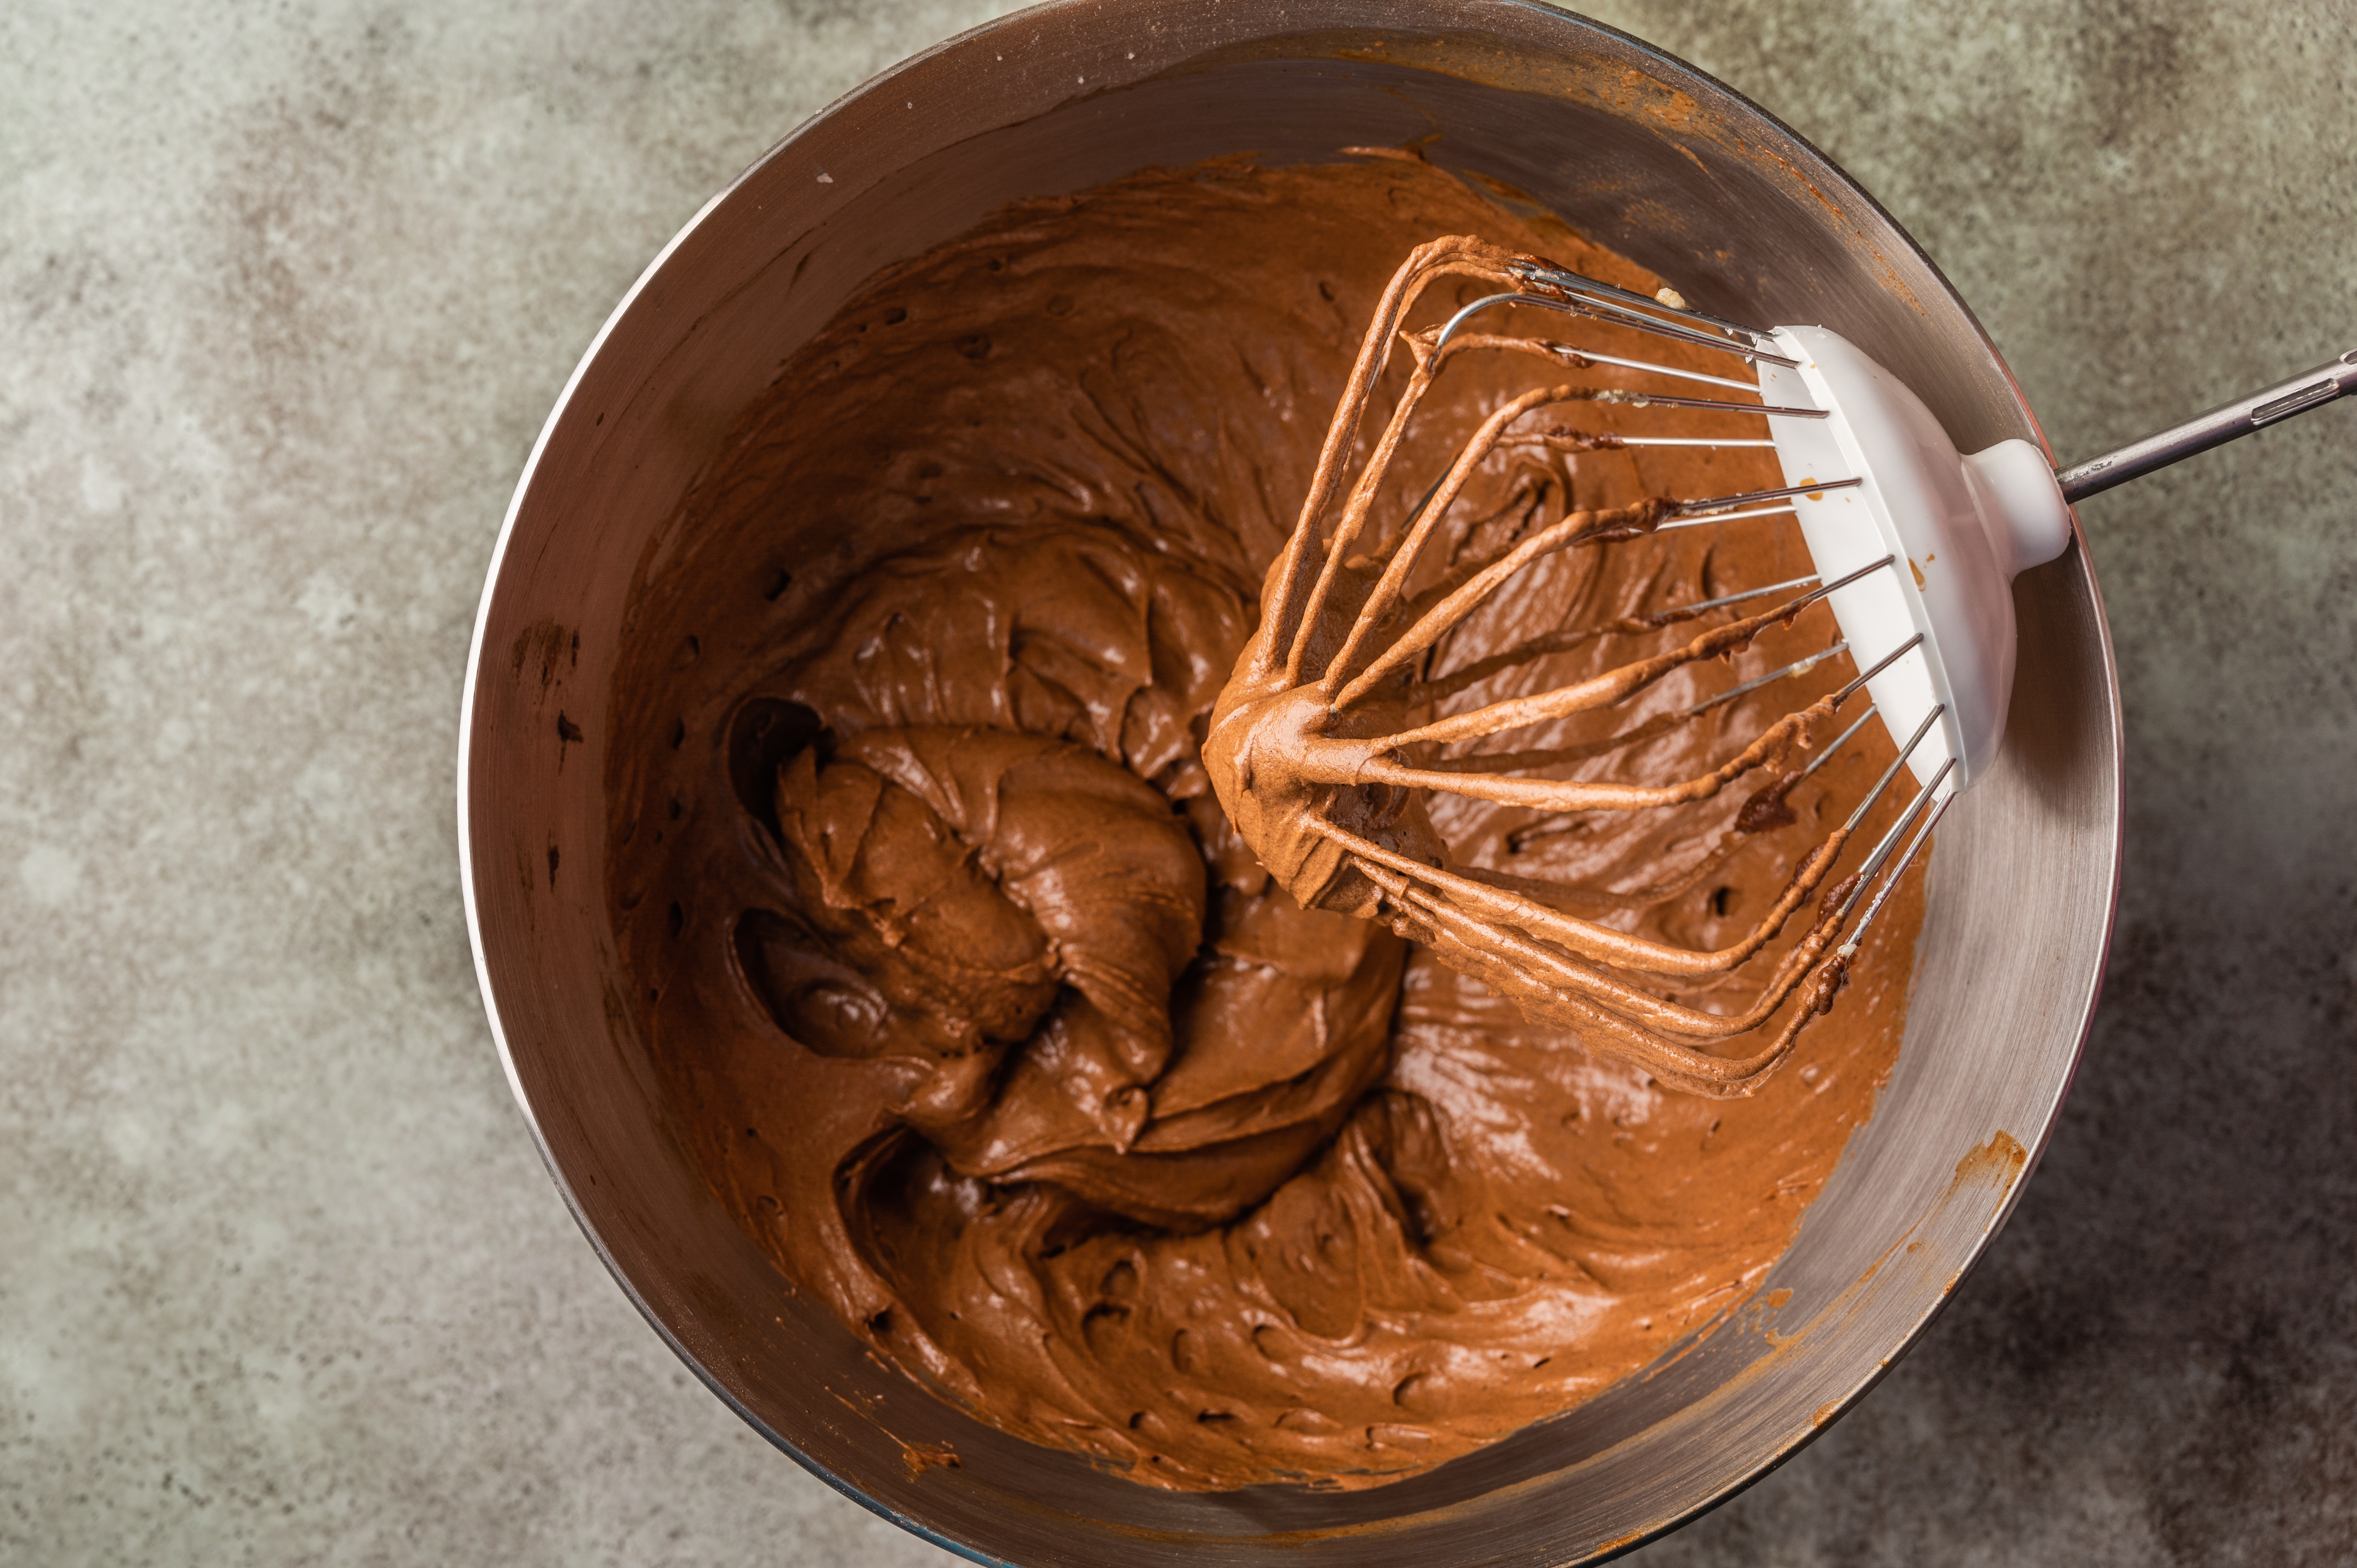 Mixing brownie dough in a food processor. Top view. Horizontal orientation in Oryol, Oryol Oblast, Russia